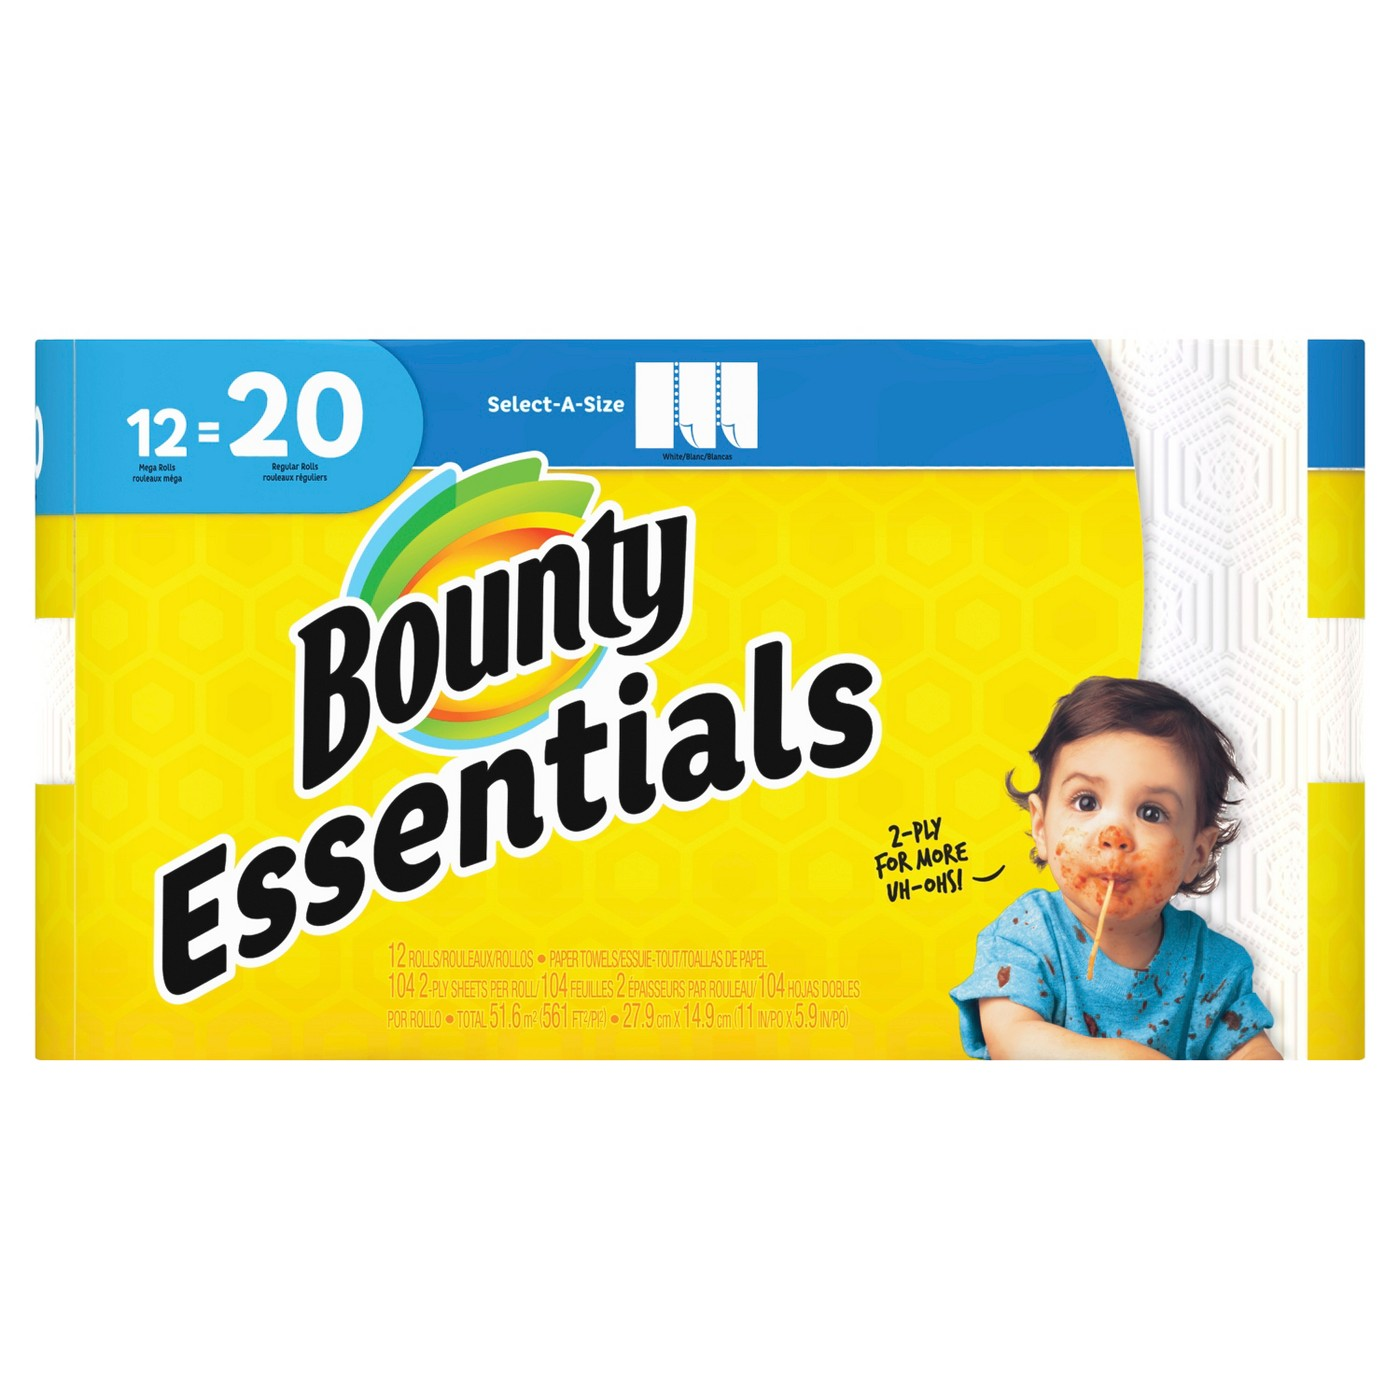 3-Pk. Bounty Basic Select-a-Size Paper Towels + $10 GC